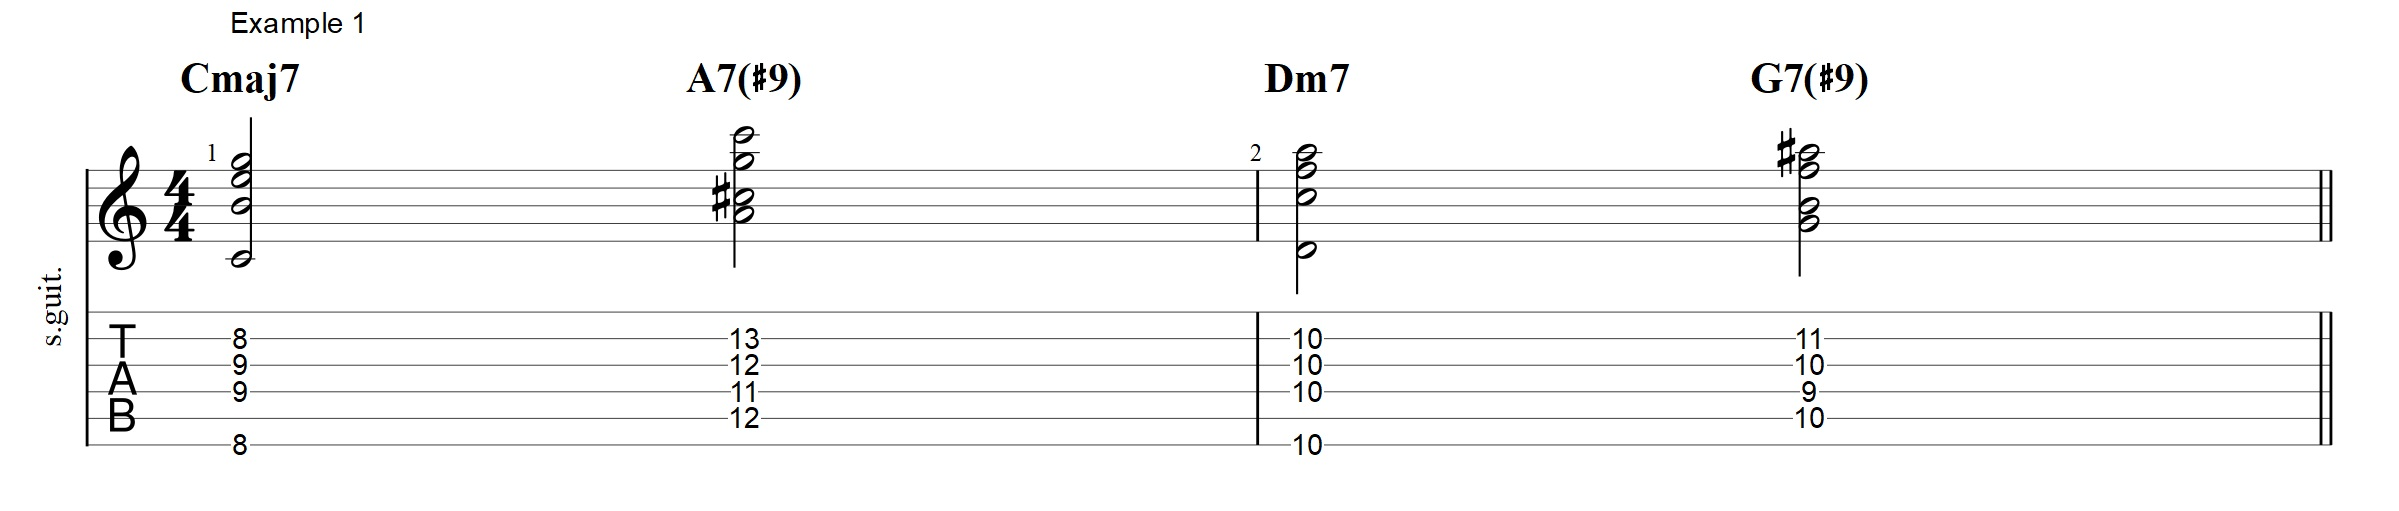 Lesson archives jens larsen the 4 chord voicings in their basic form is shown here below both as tab and diagrams hexwebz Image collections